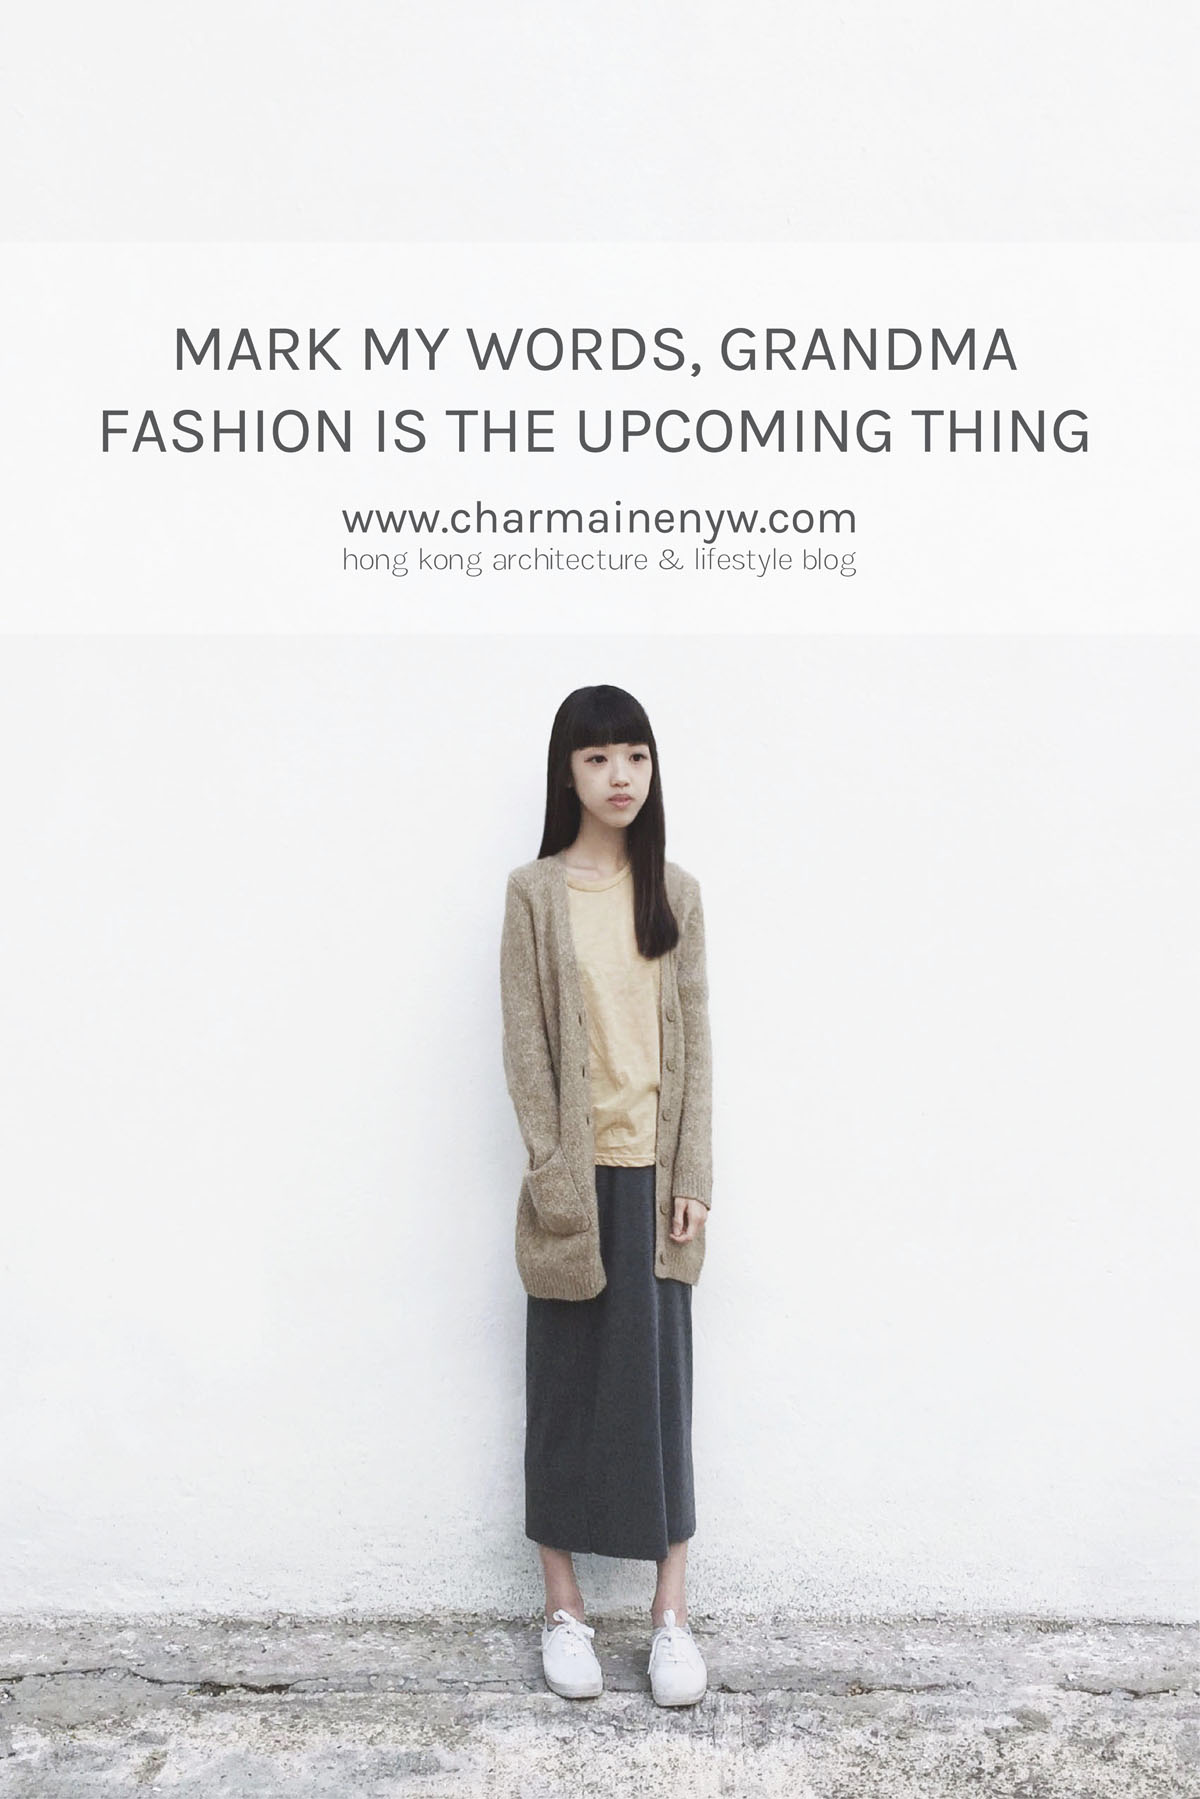 The grandma cardigan is an upcoming fashion trend